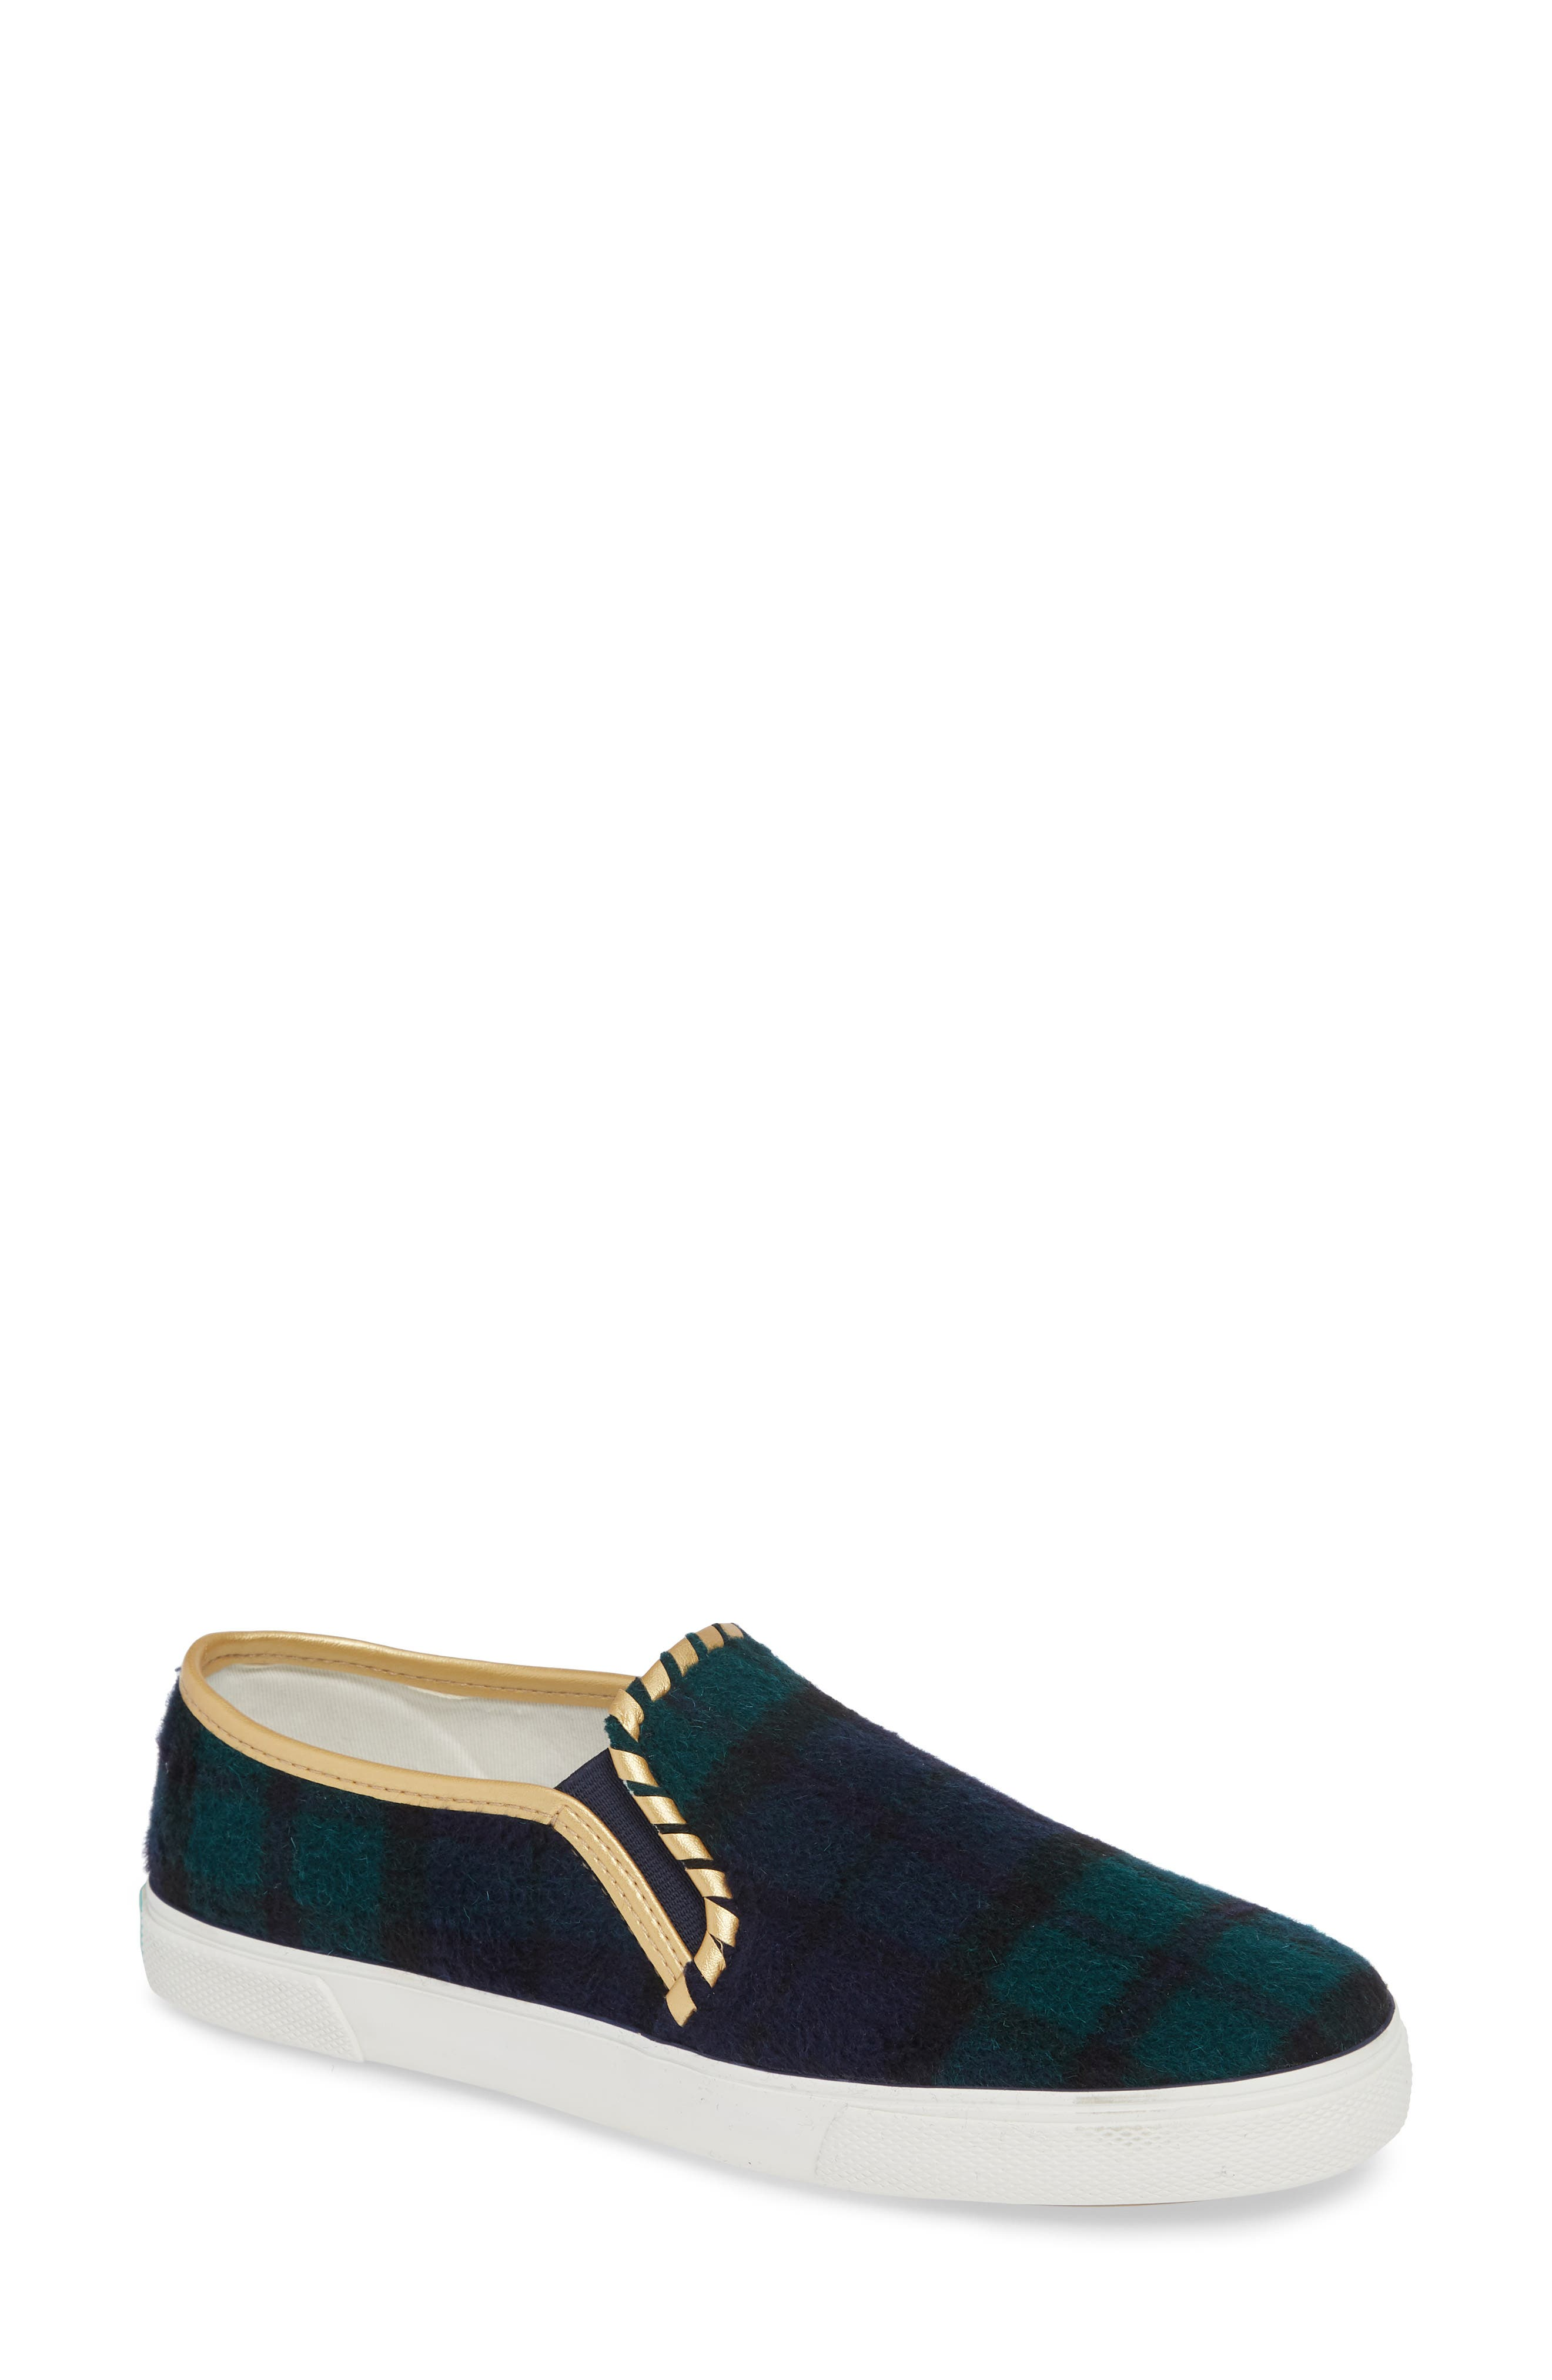 Brynne Slip-On Sneaker,                         Main,                         color, MIDNIGHT/ GREEN FABRIC